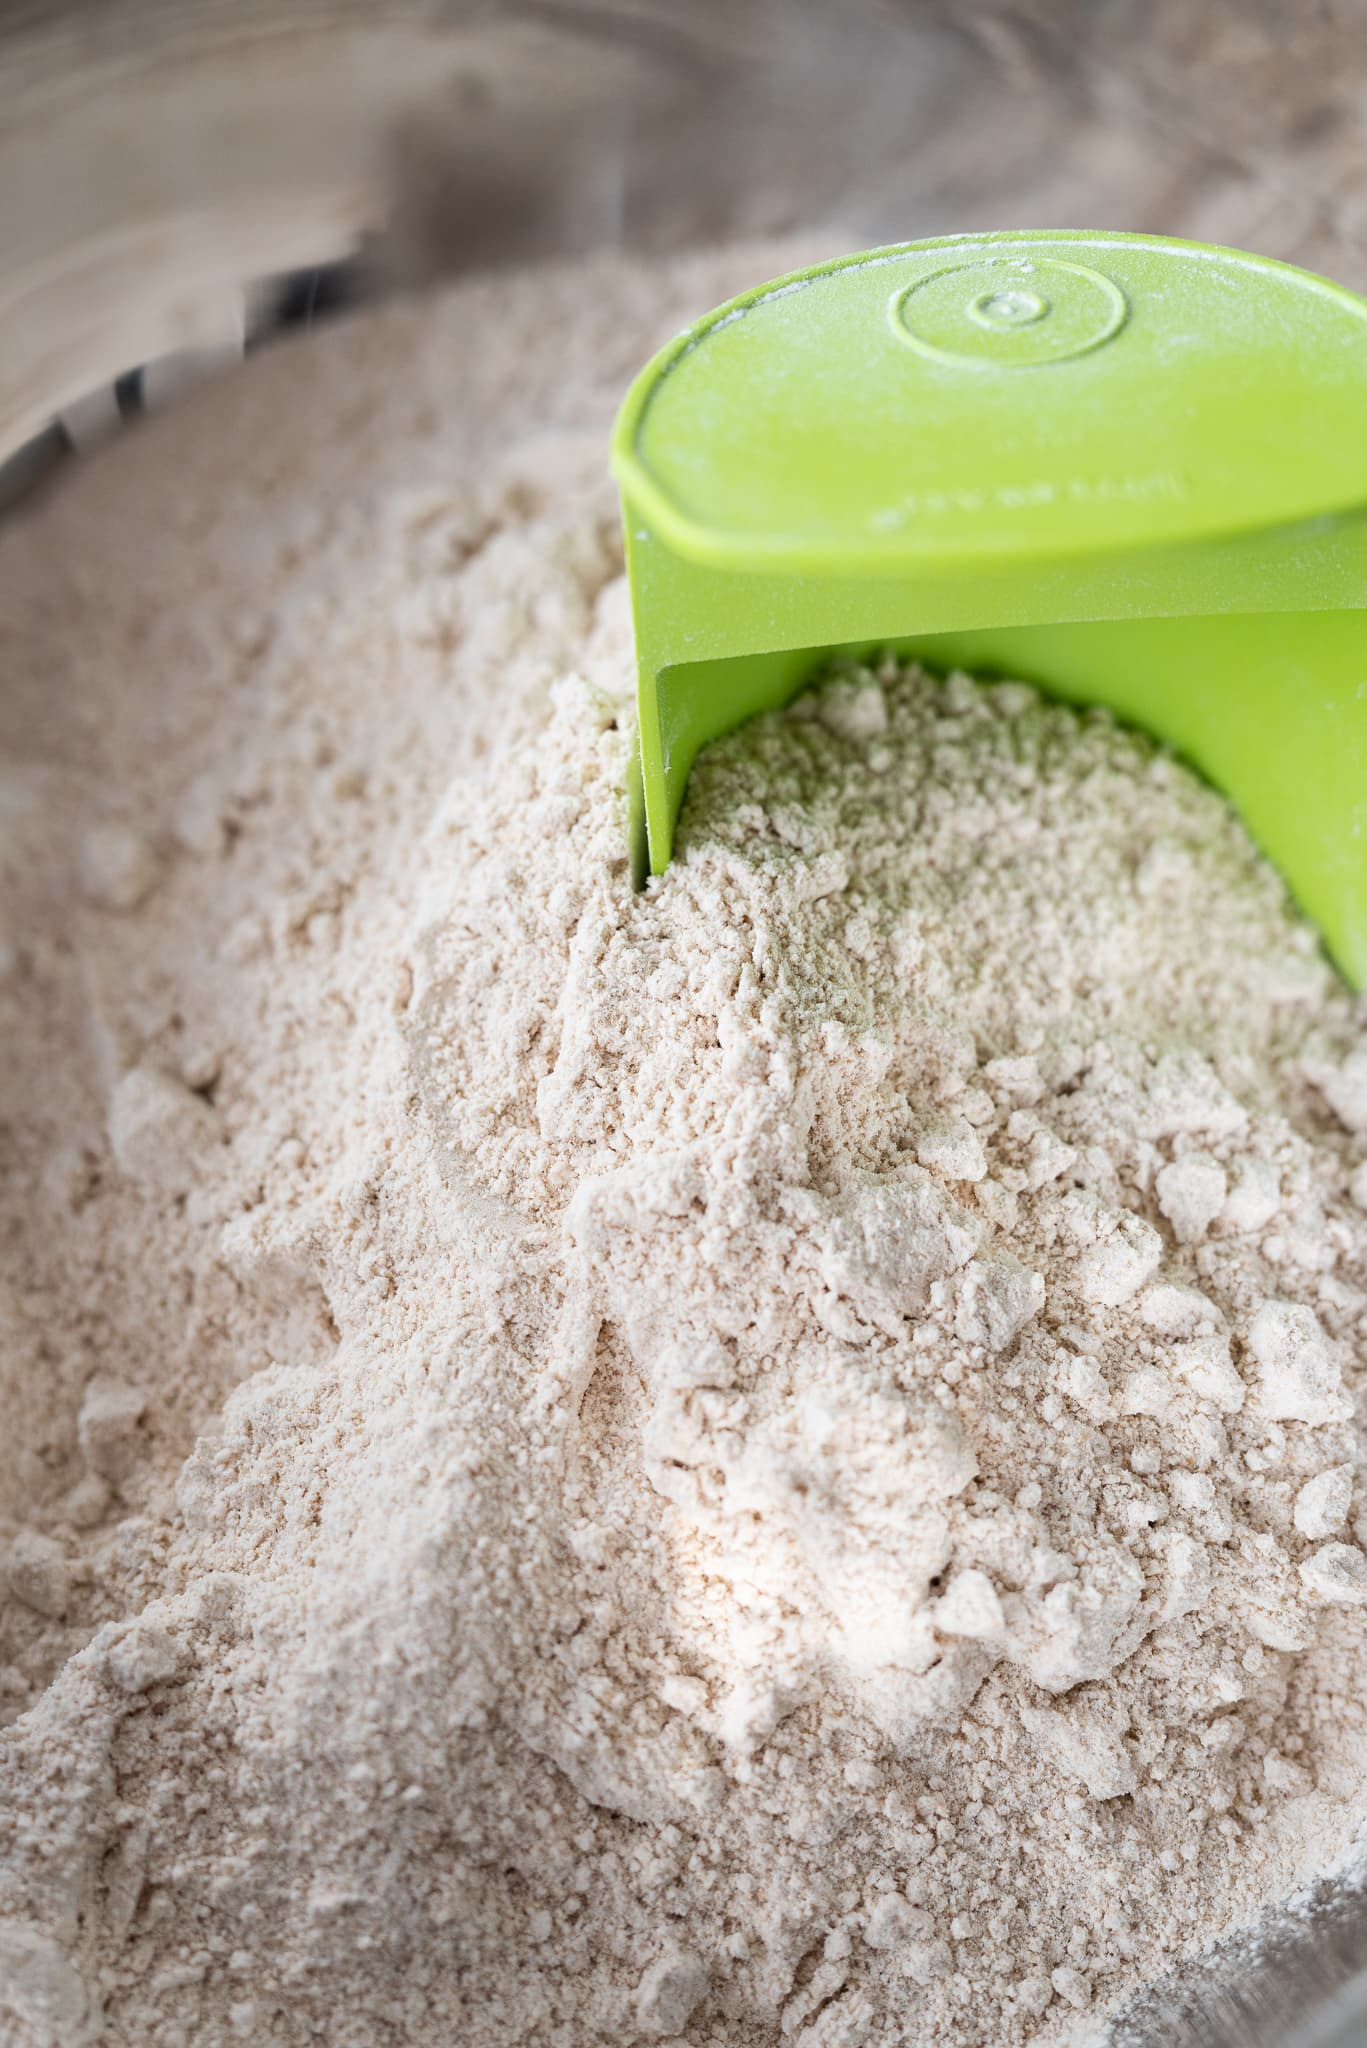 The best way to store flour